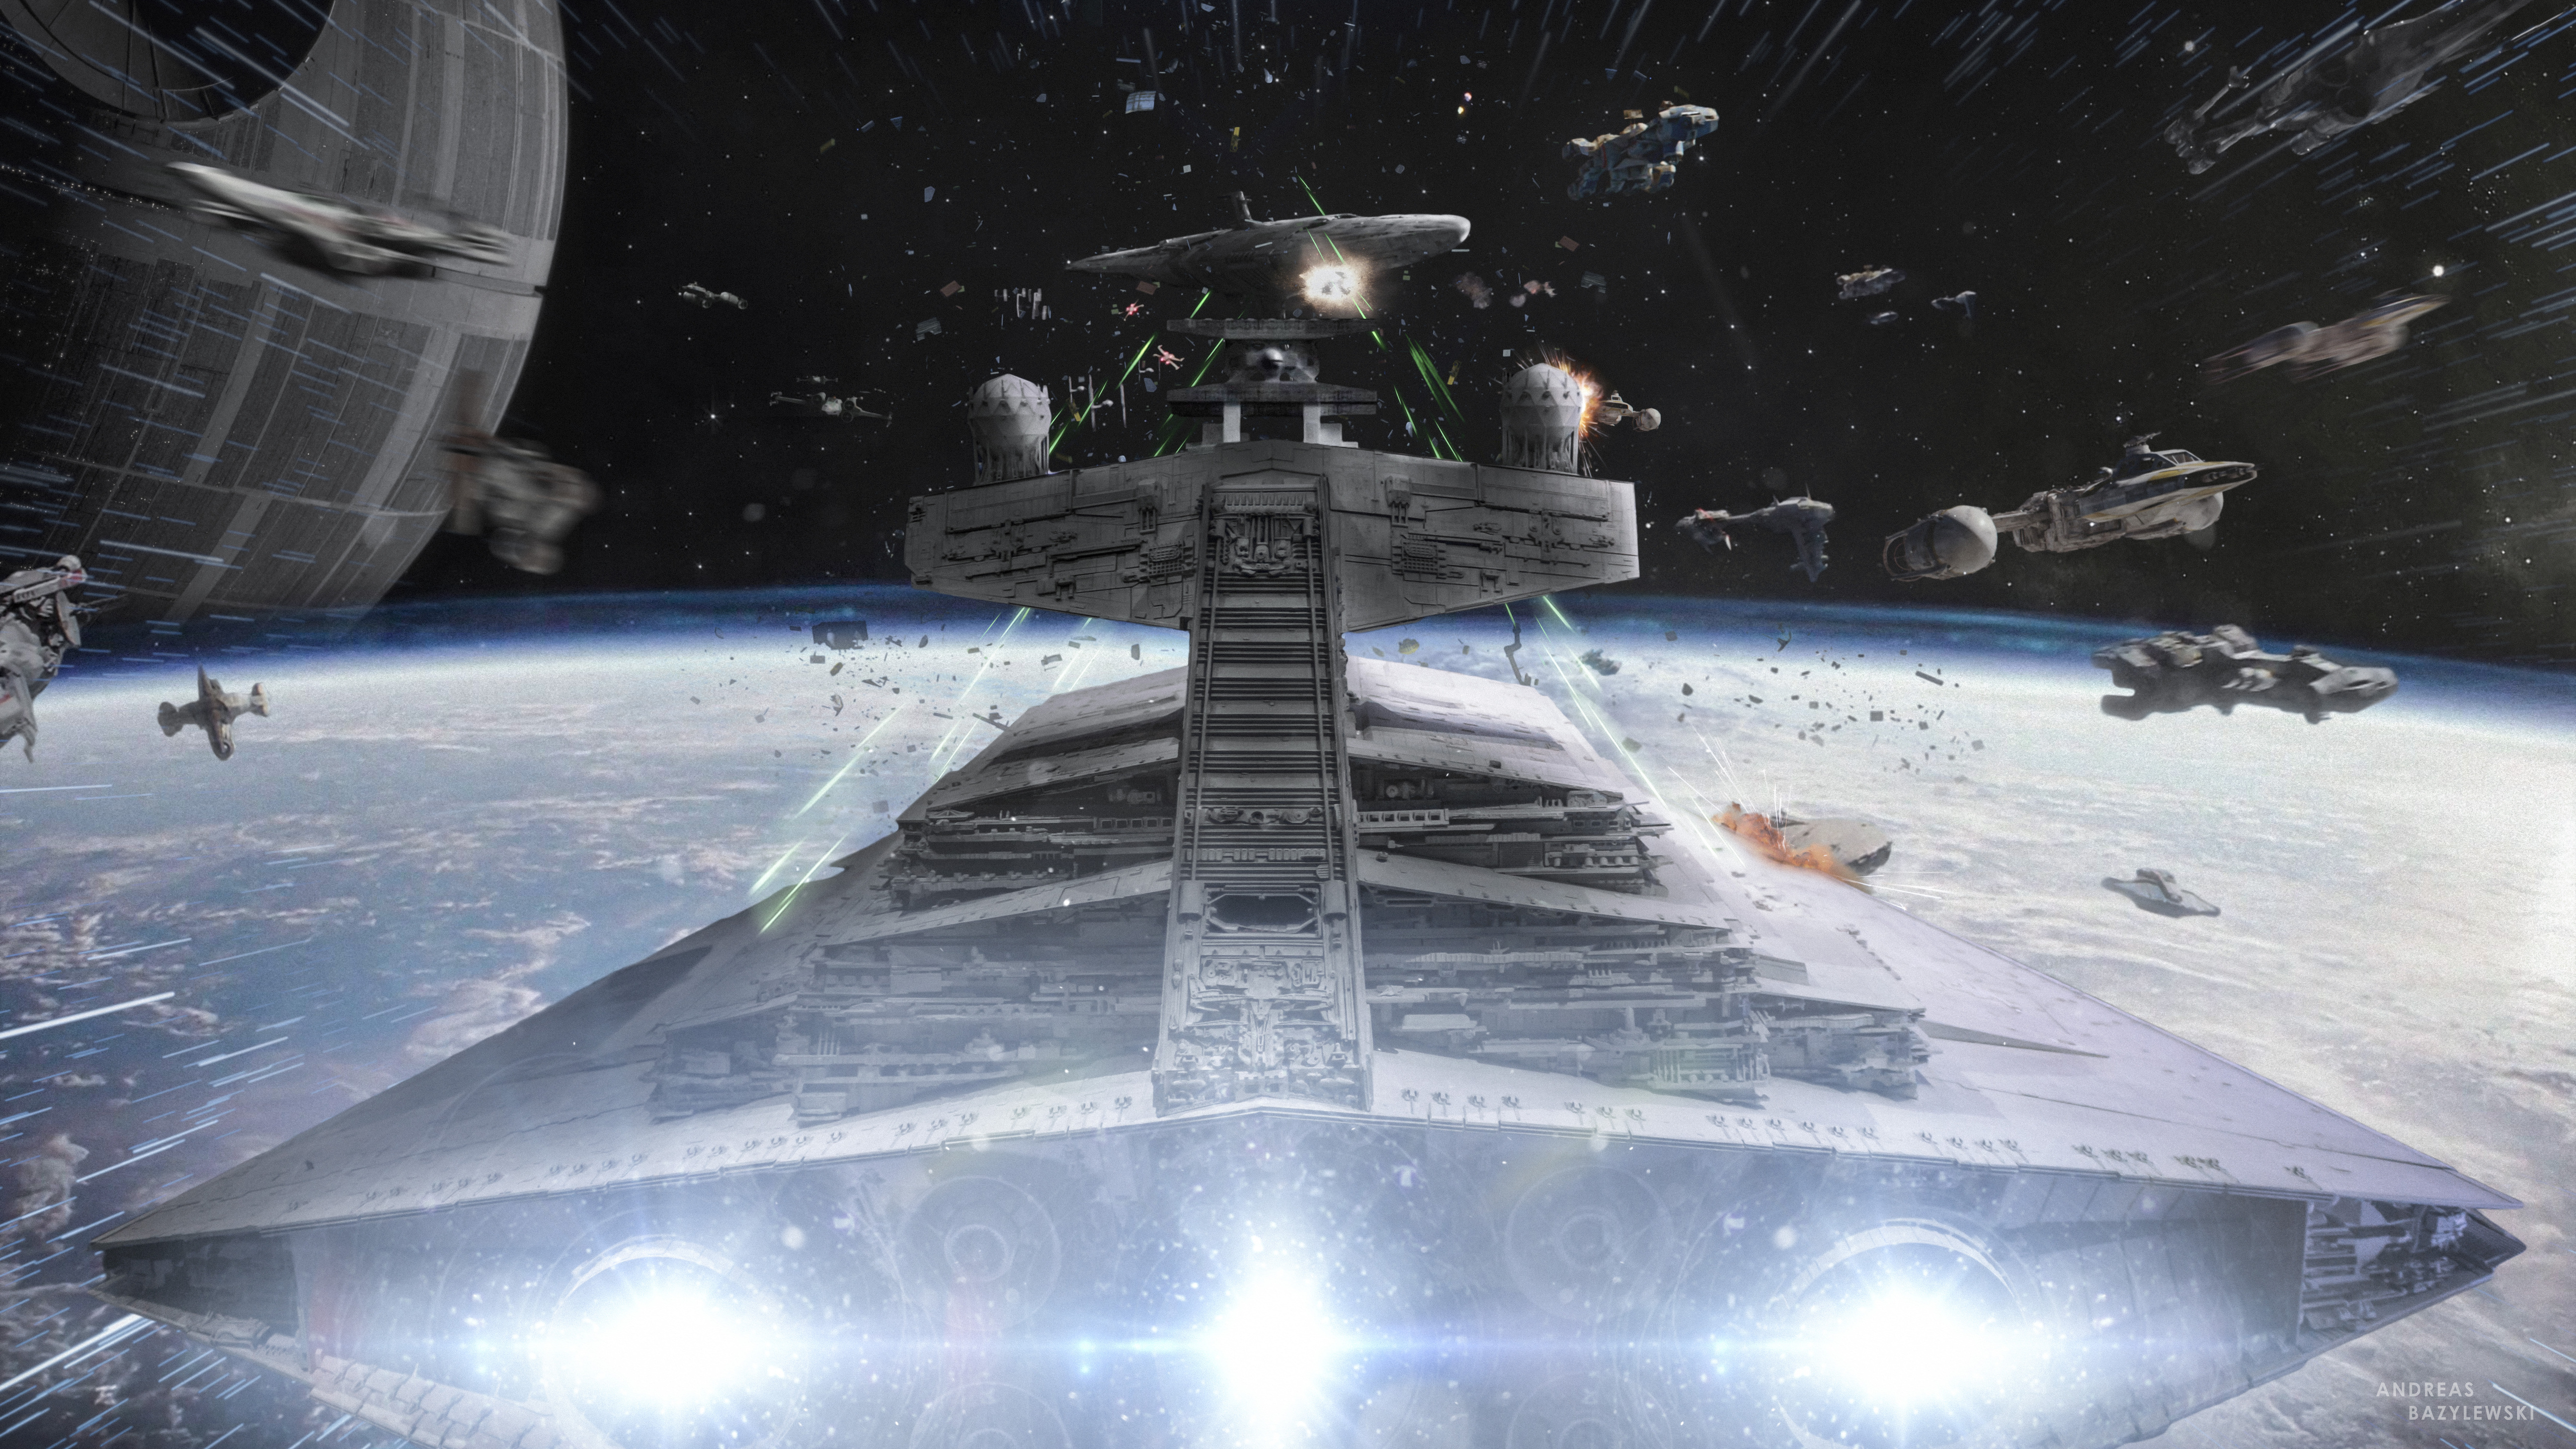 5120x2880 Star Wars Devastator Ship 5k Hd 4k Wallpapers Images Backgrounds Photos And Pictures